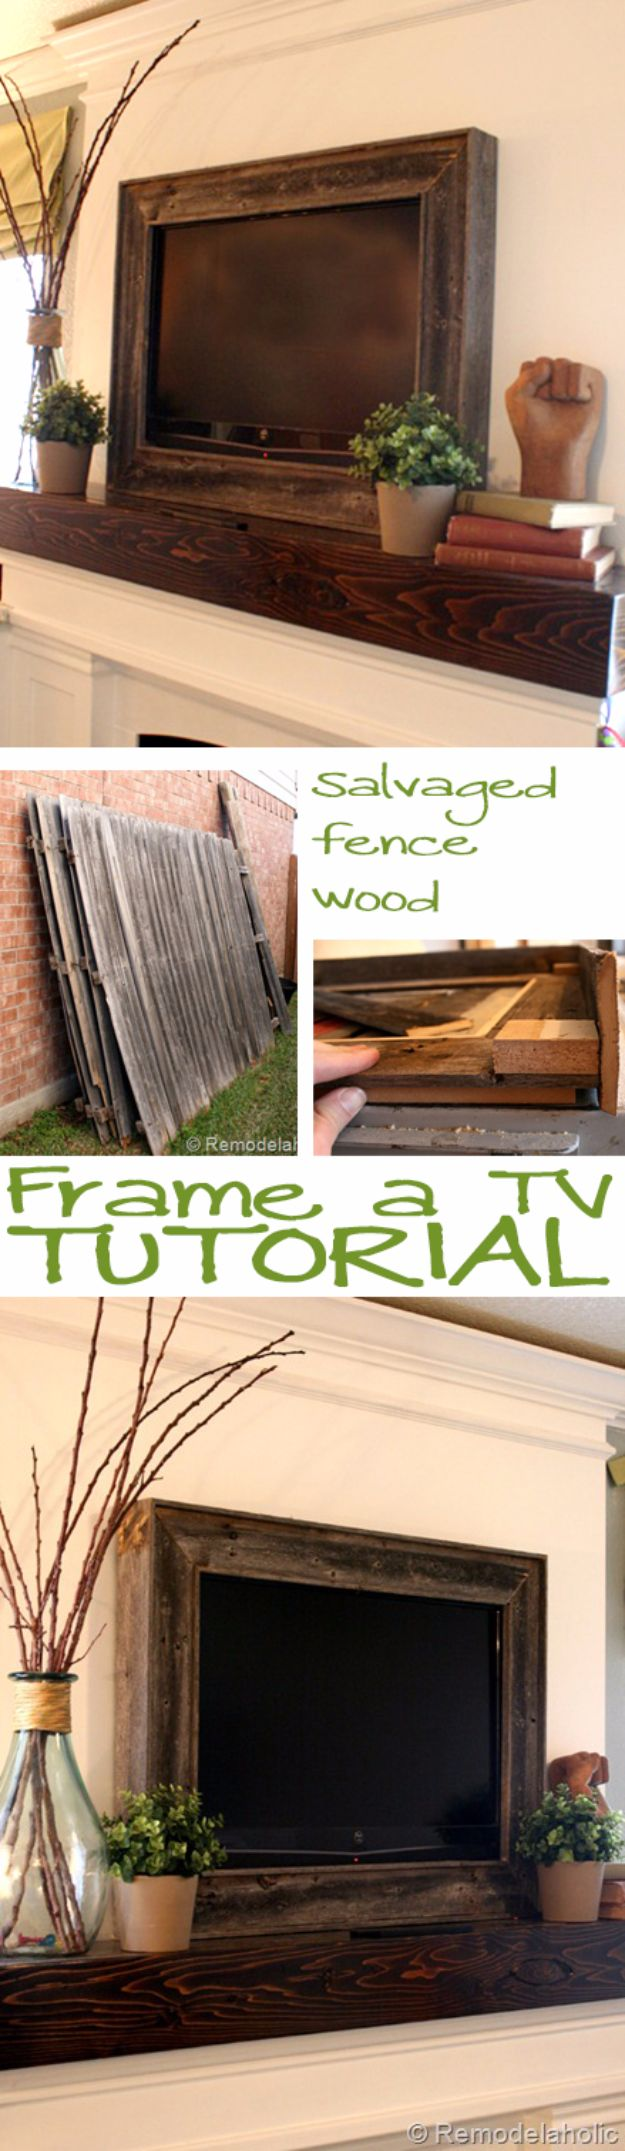 DIY Remodeling Hacks - Frame A TV - Quick and Easy Home Repair Tips and Tricks - Cool Hacks for DIY Home Improvement Ideas - Cheap Ways To Fix Bathroom, Bedroom, Kitchen, Outdoor, Living Room and Lighting - Creative Renovation on A Budget - DIY Projects and Crafts by DIY JOY #remodeling #homeimprovement #diy #hacks